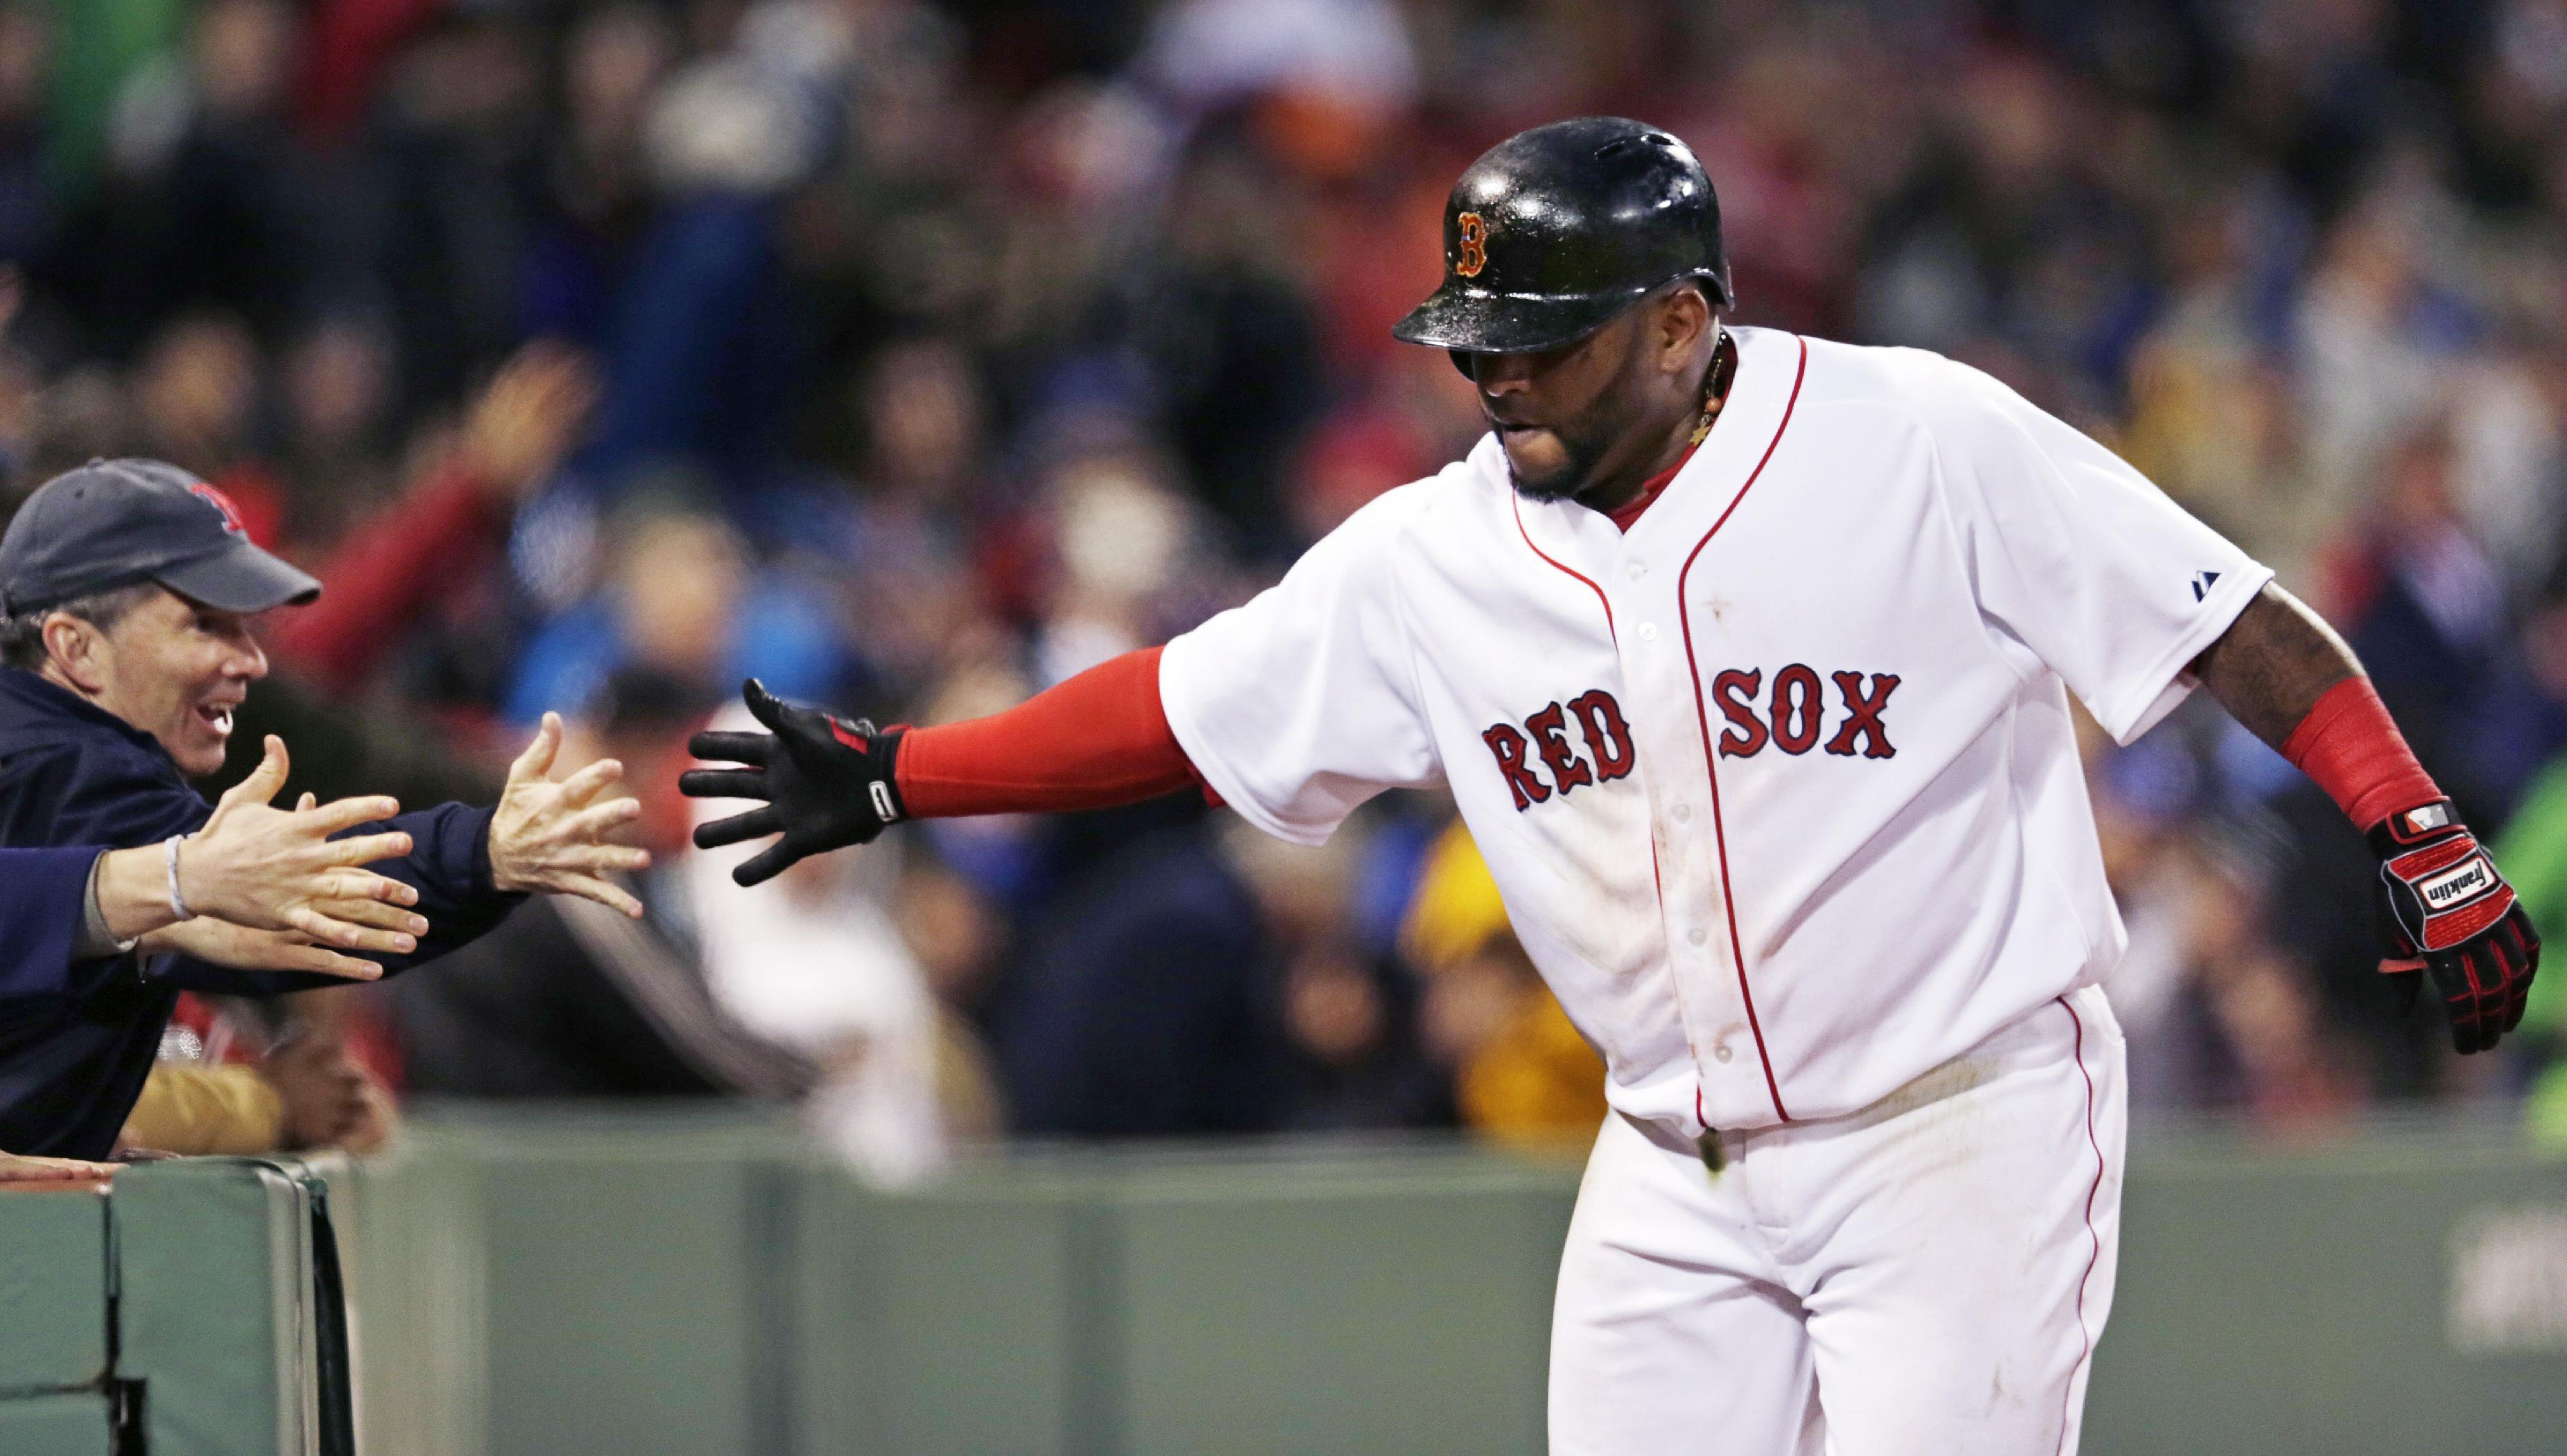 Pablo Sandoval has allegedly lost 20 pounds this offseason